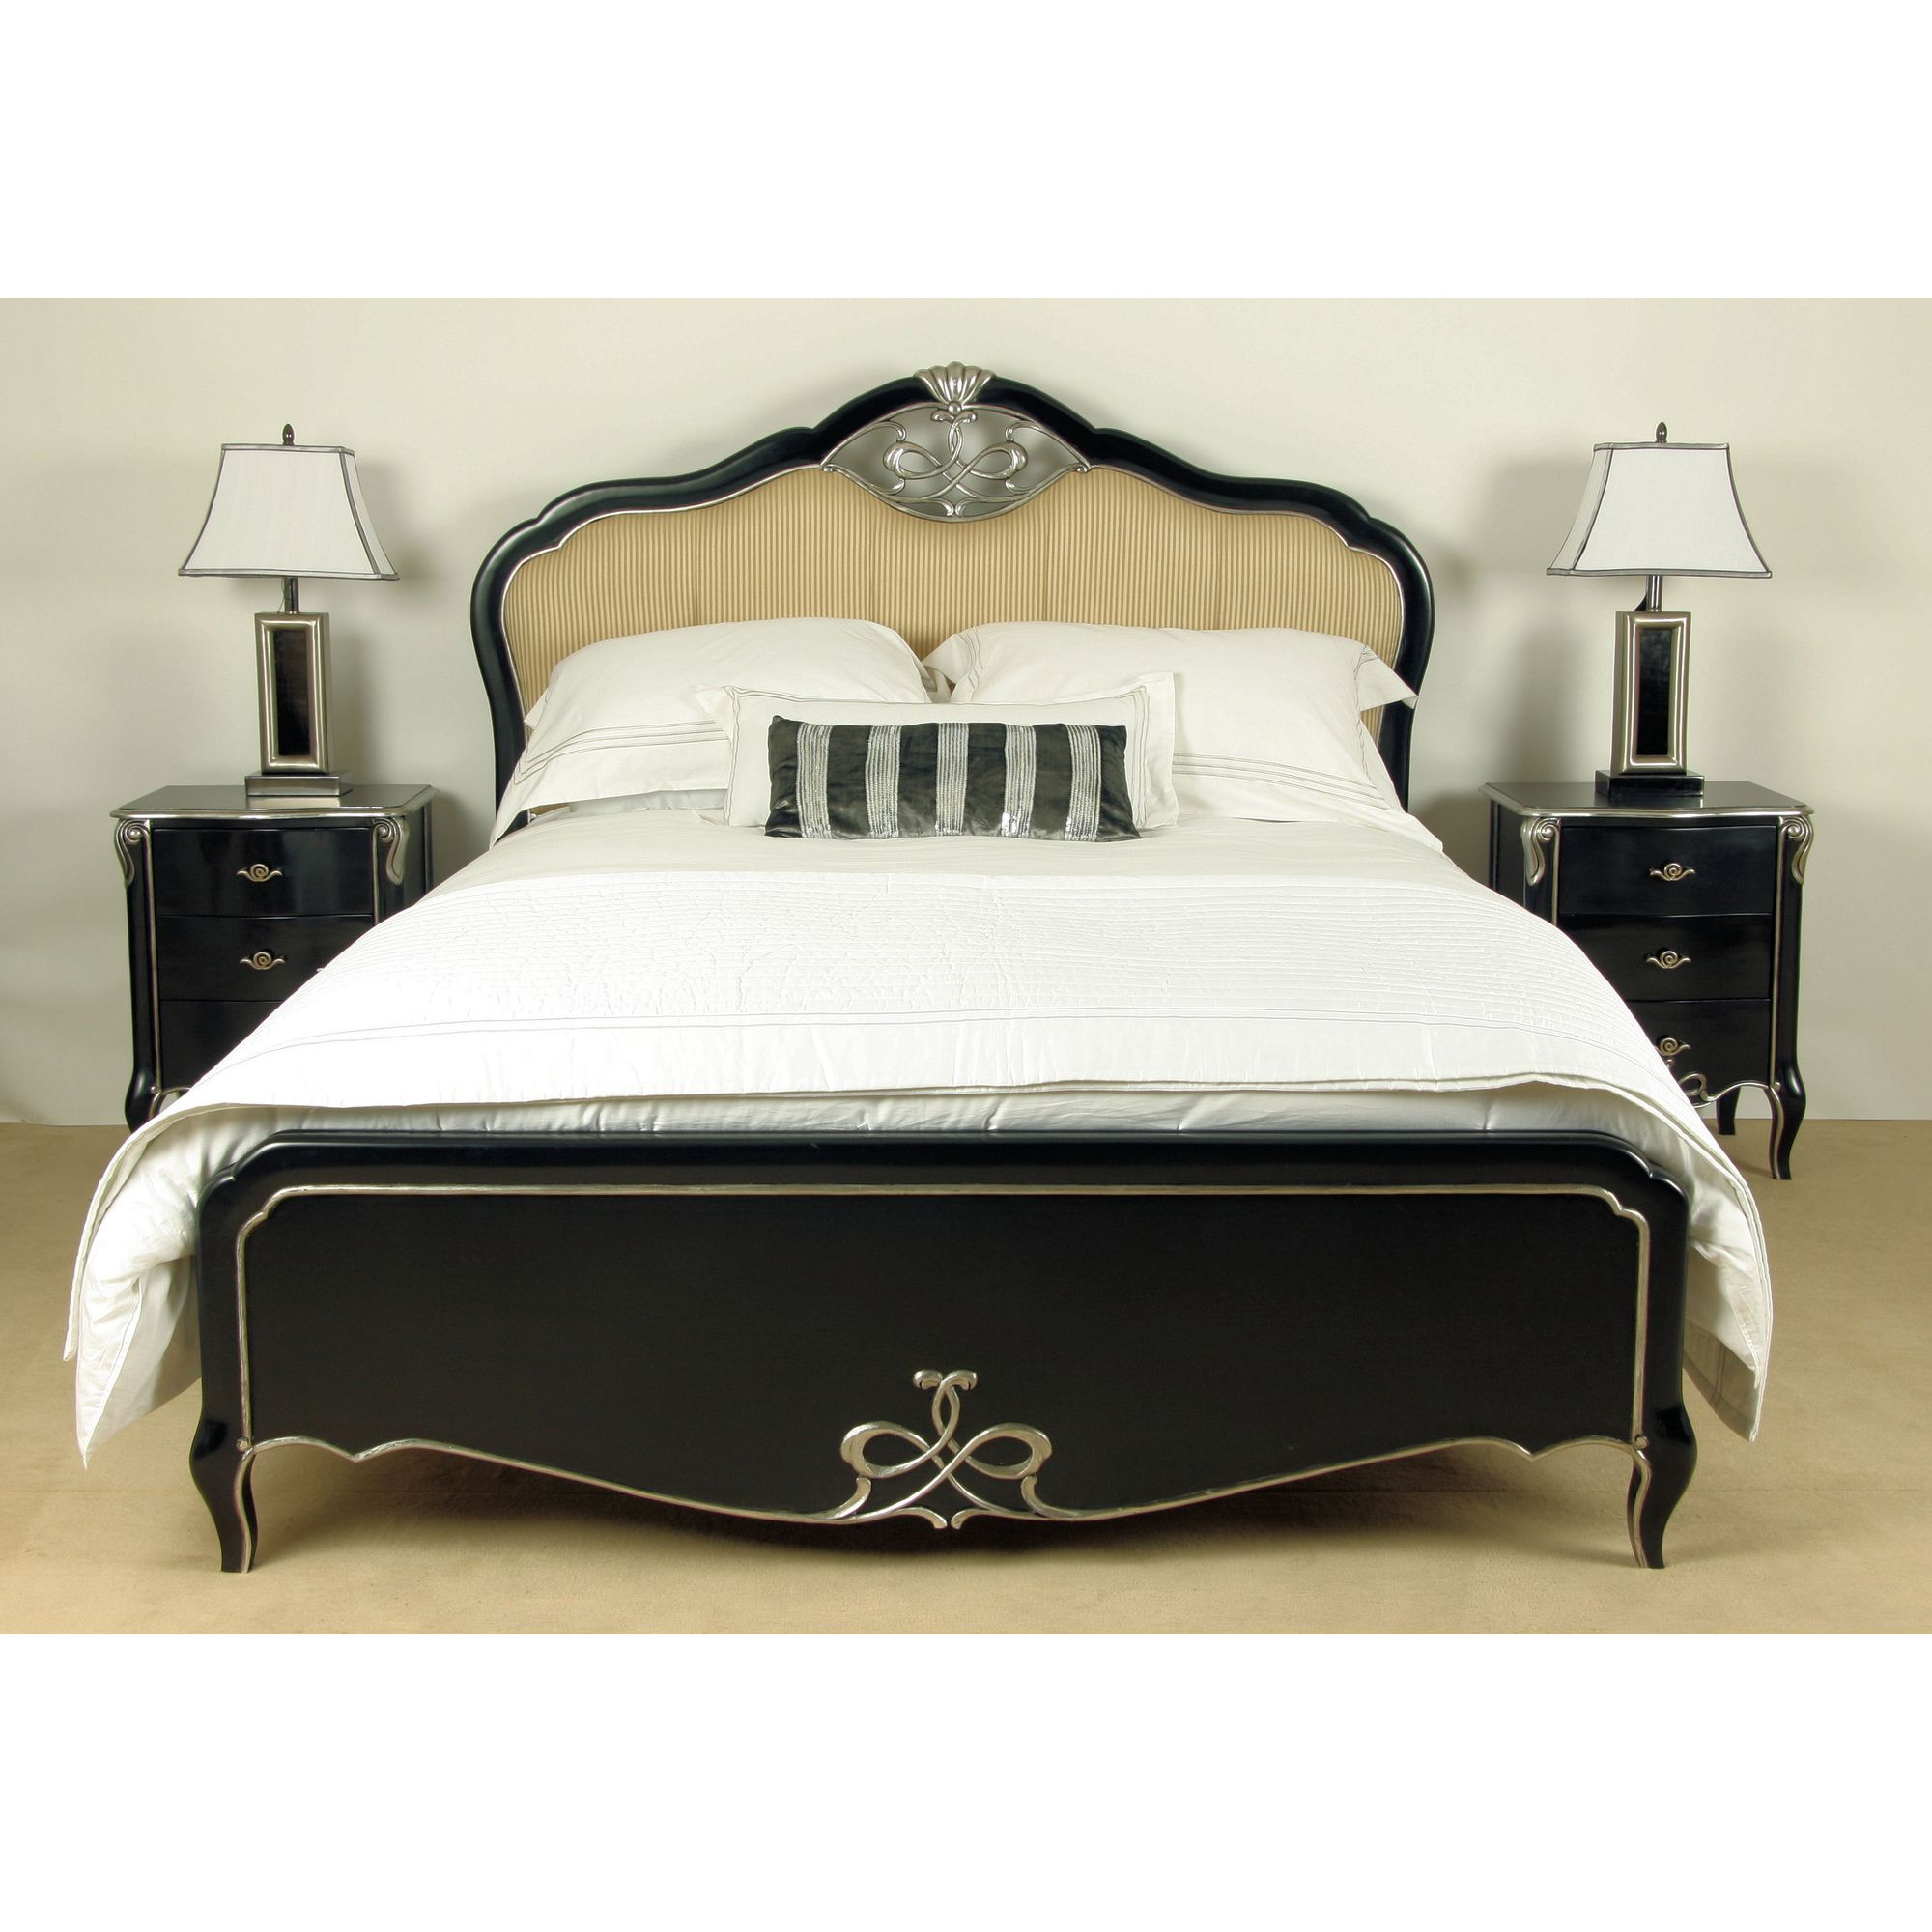 Wildwood Coco Bed Frame - King at Tesco Direct